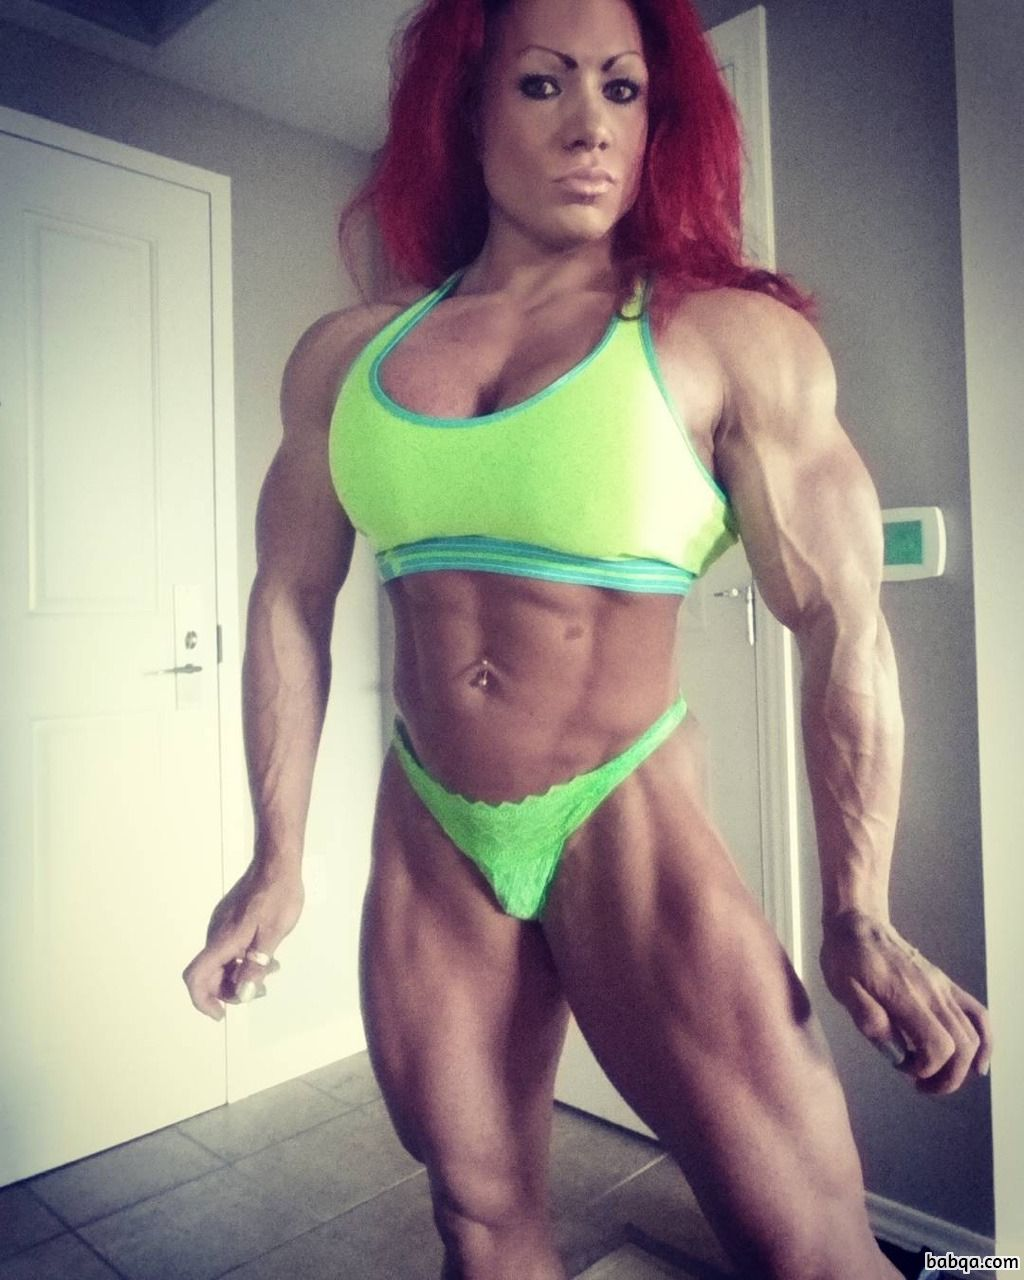 spicy female bodybuilder with muscular body and toned booty pic from flickr